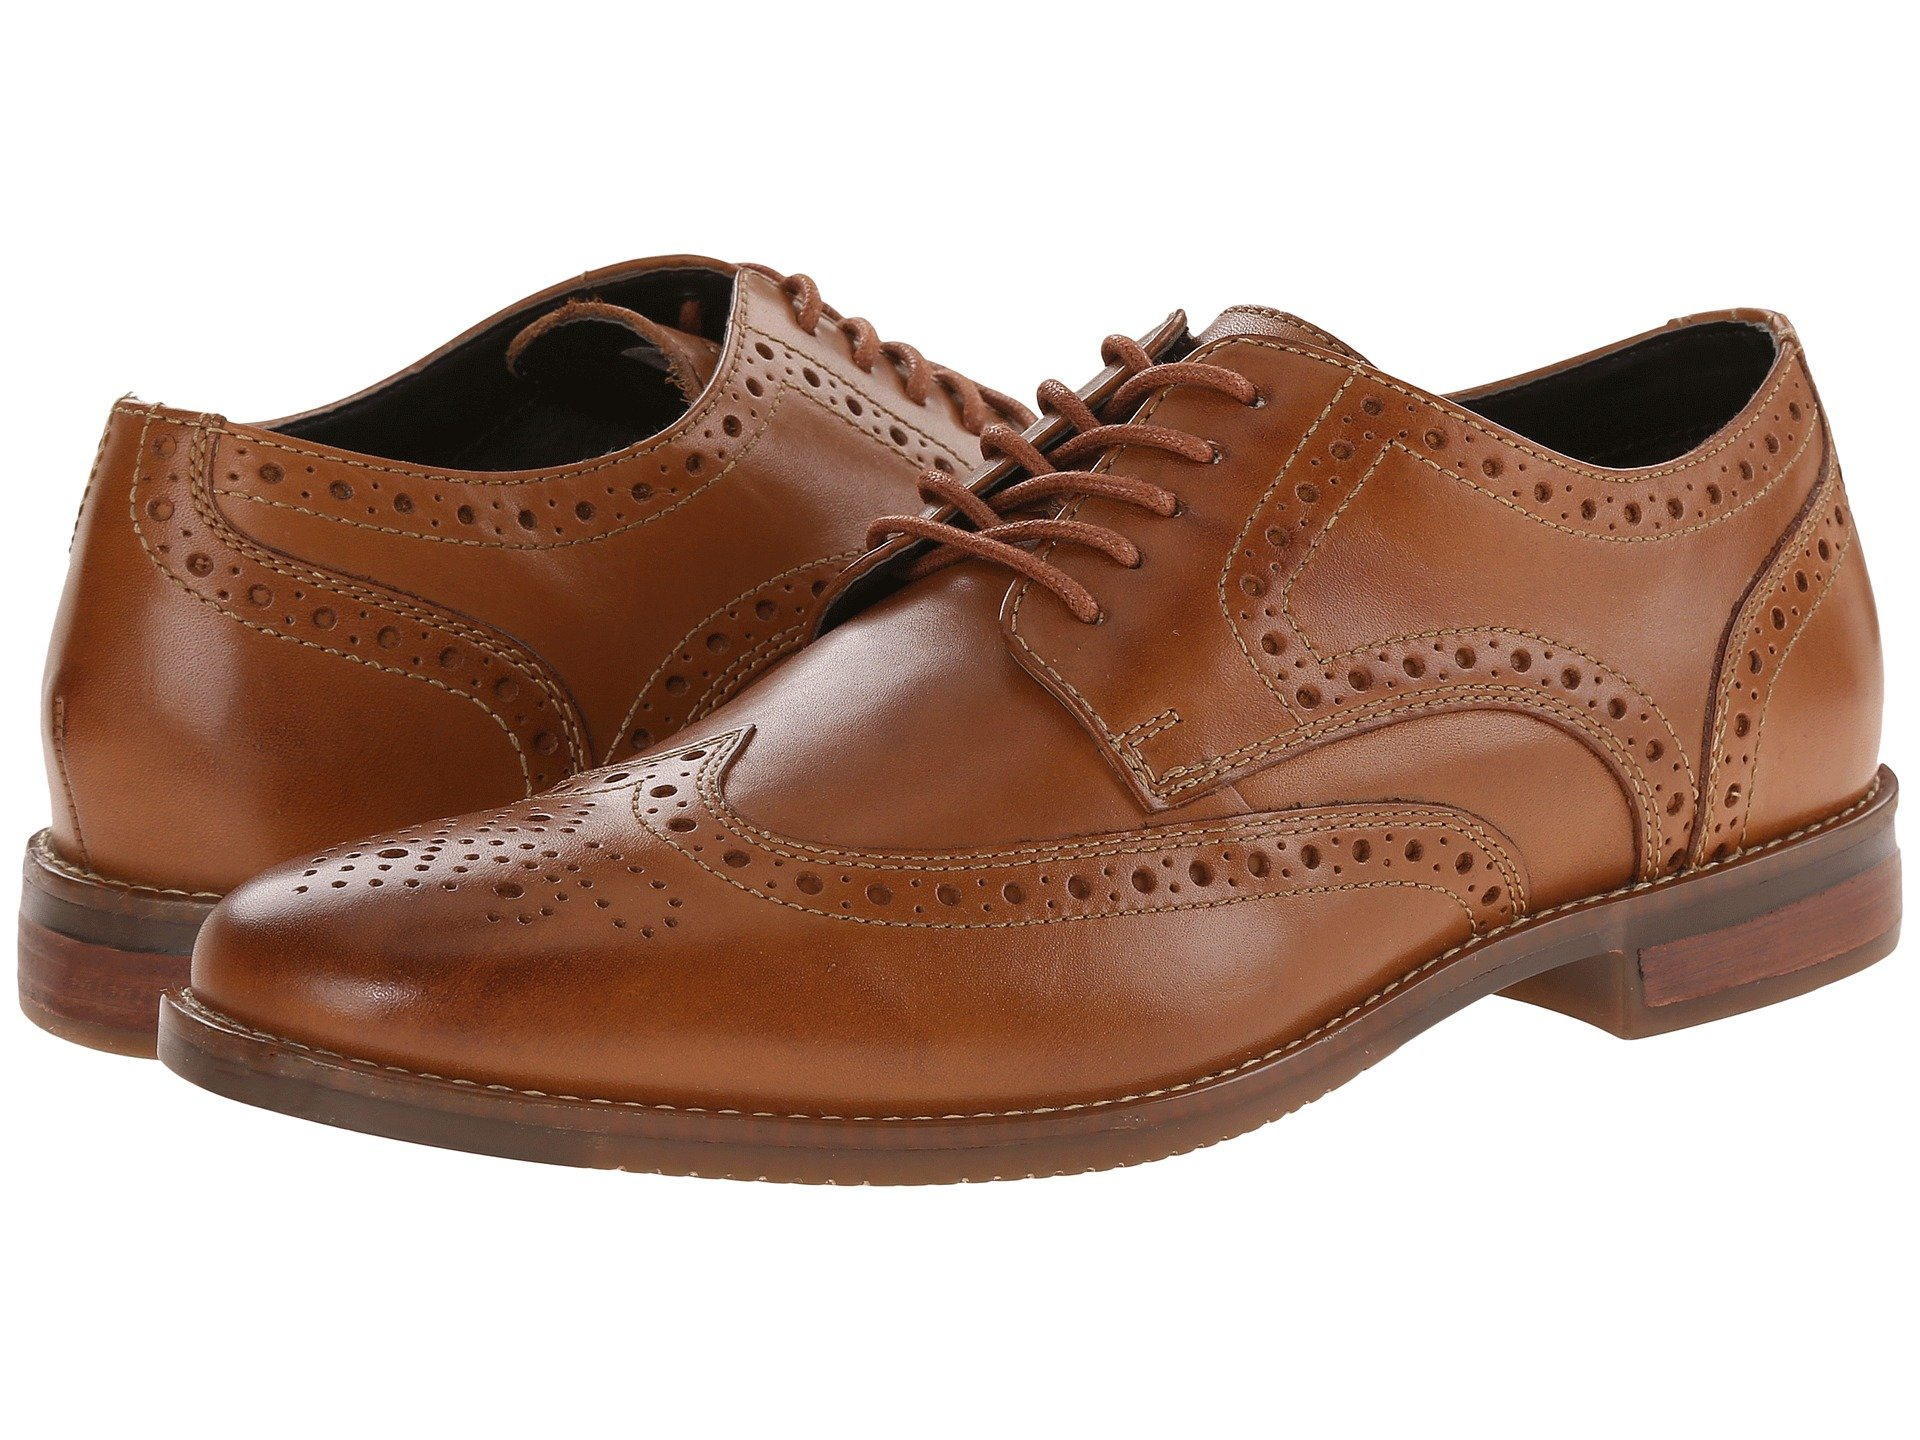 4b6b2129d57 Men s Oxfords